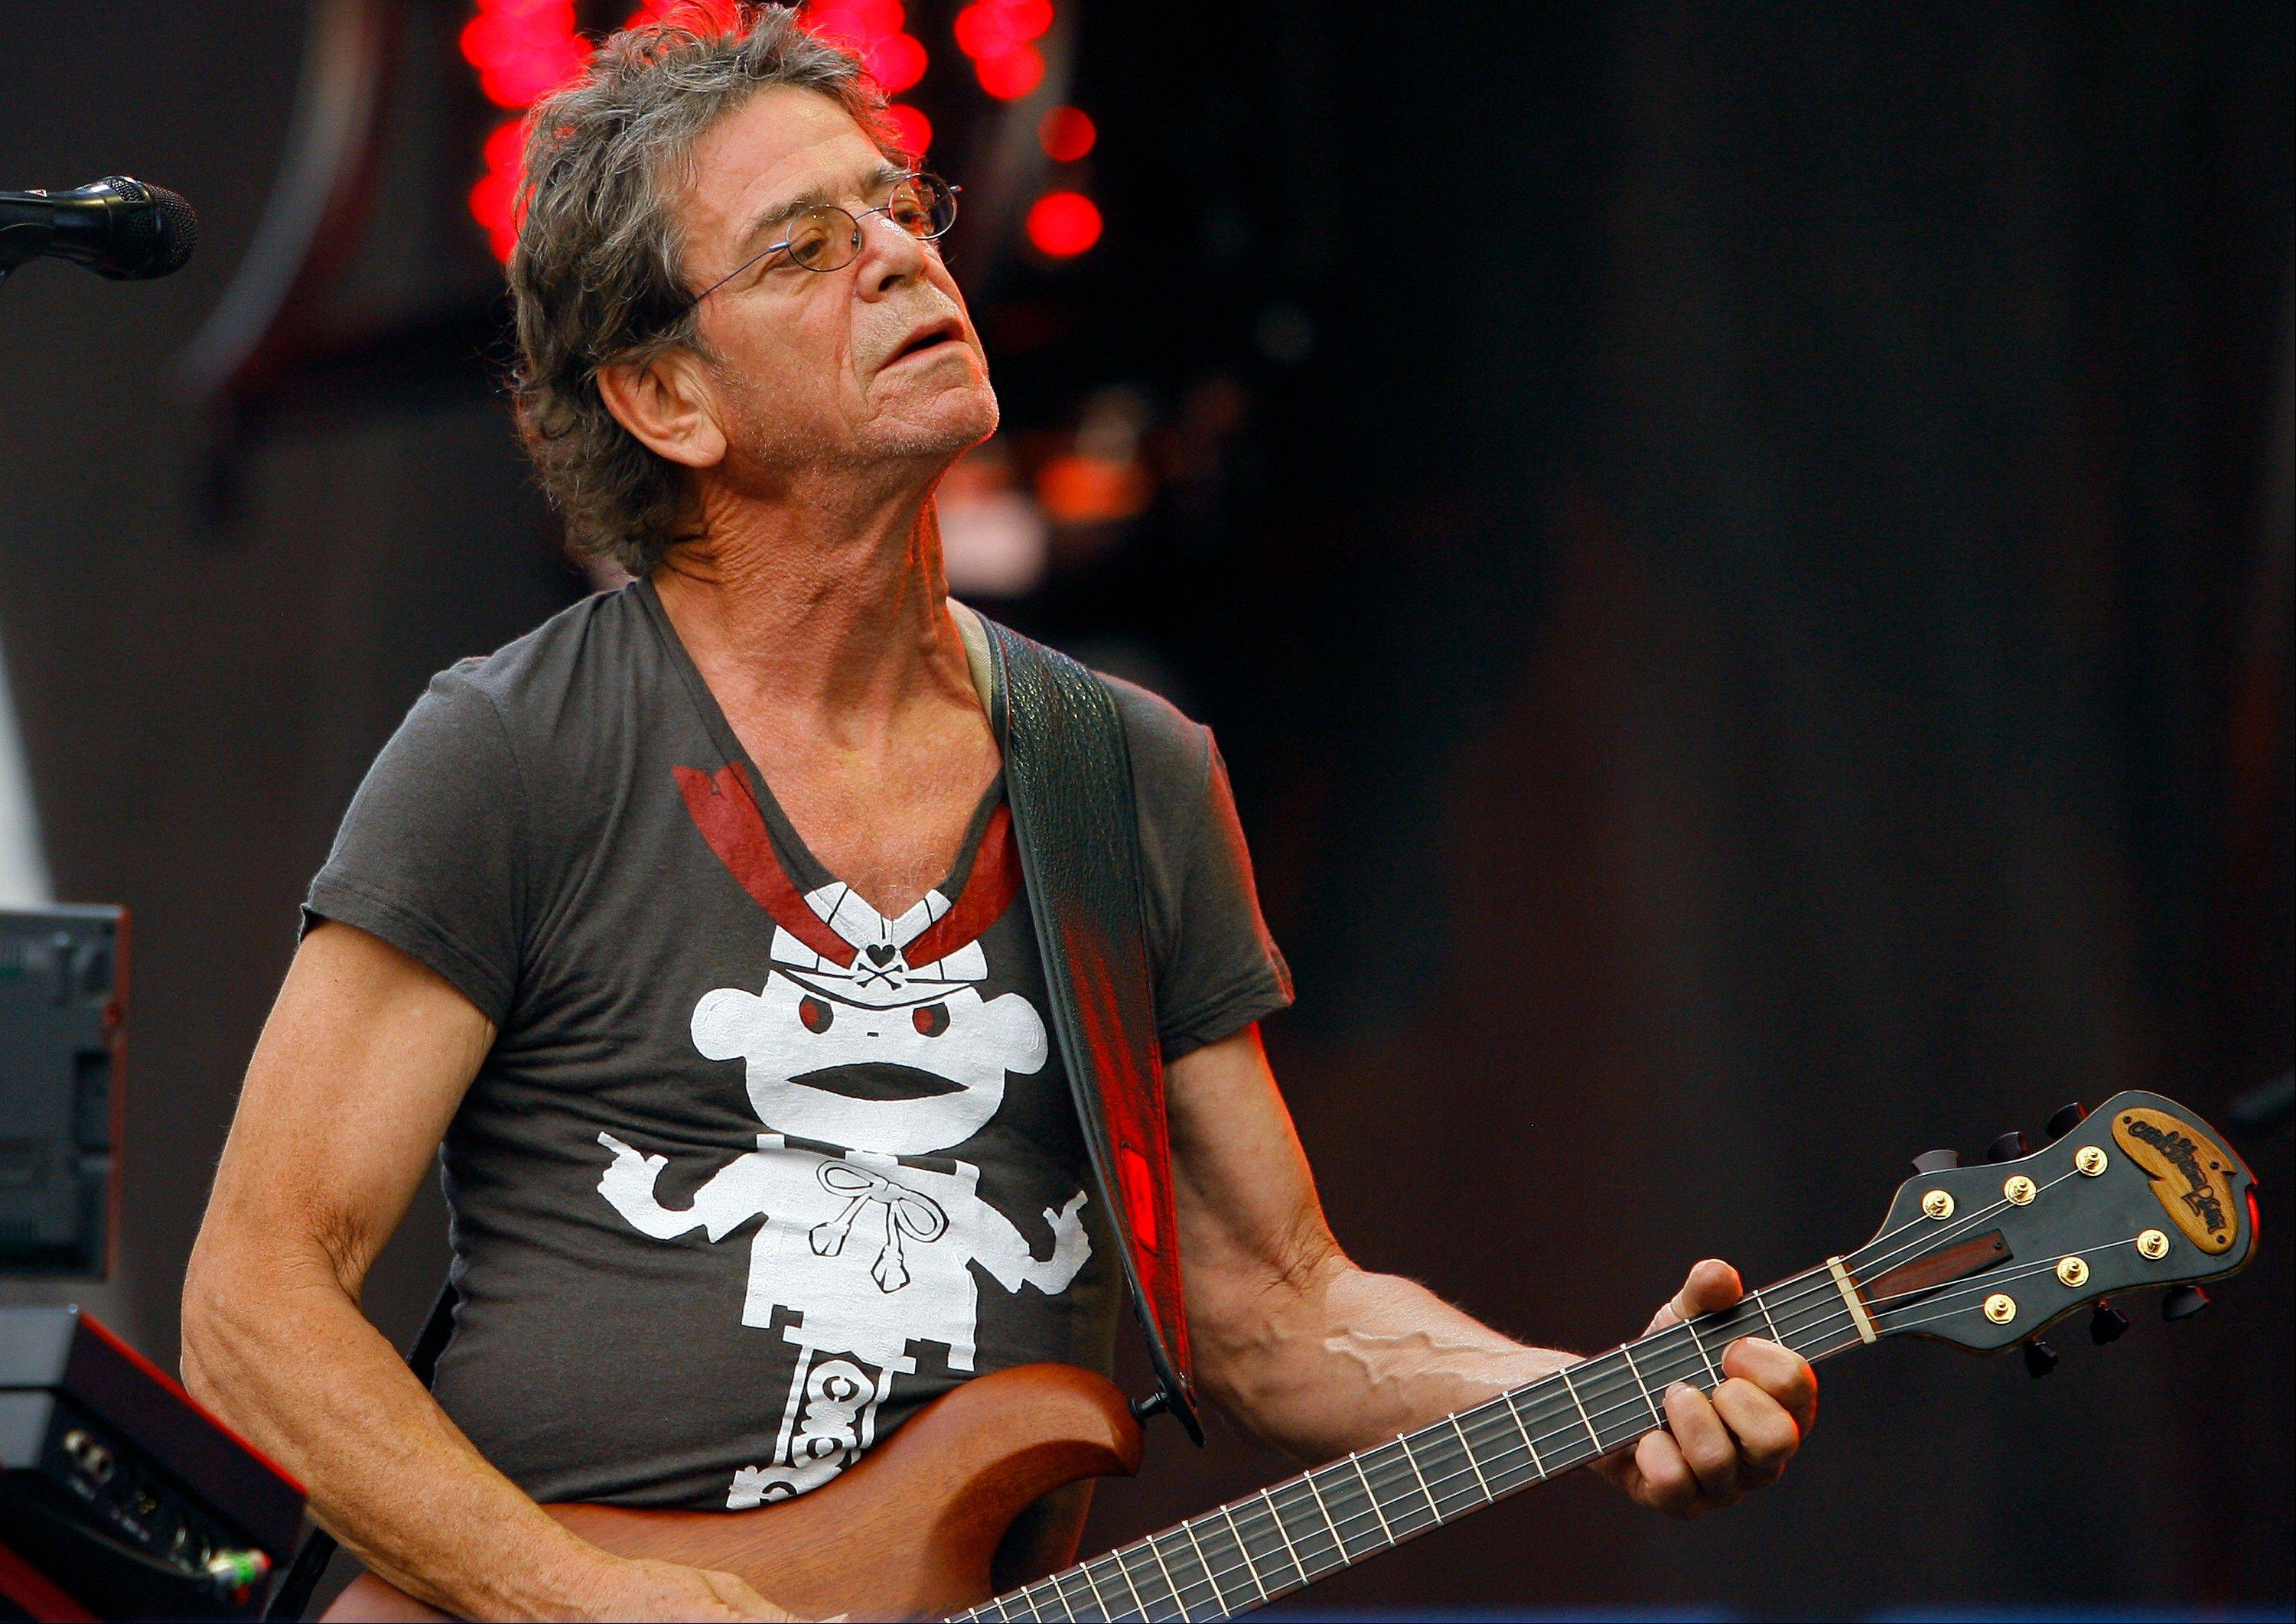 Lou Reed performs at the Lollapalooza music festival in Chicago in 2009.